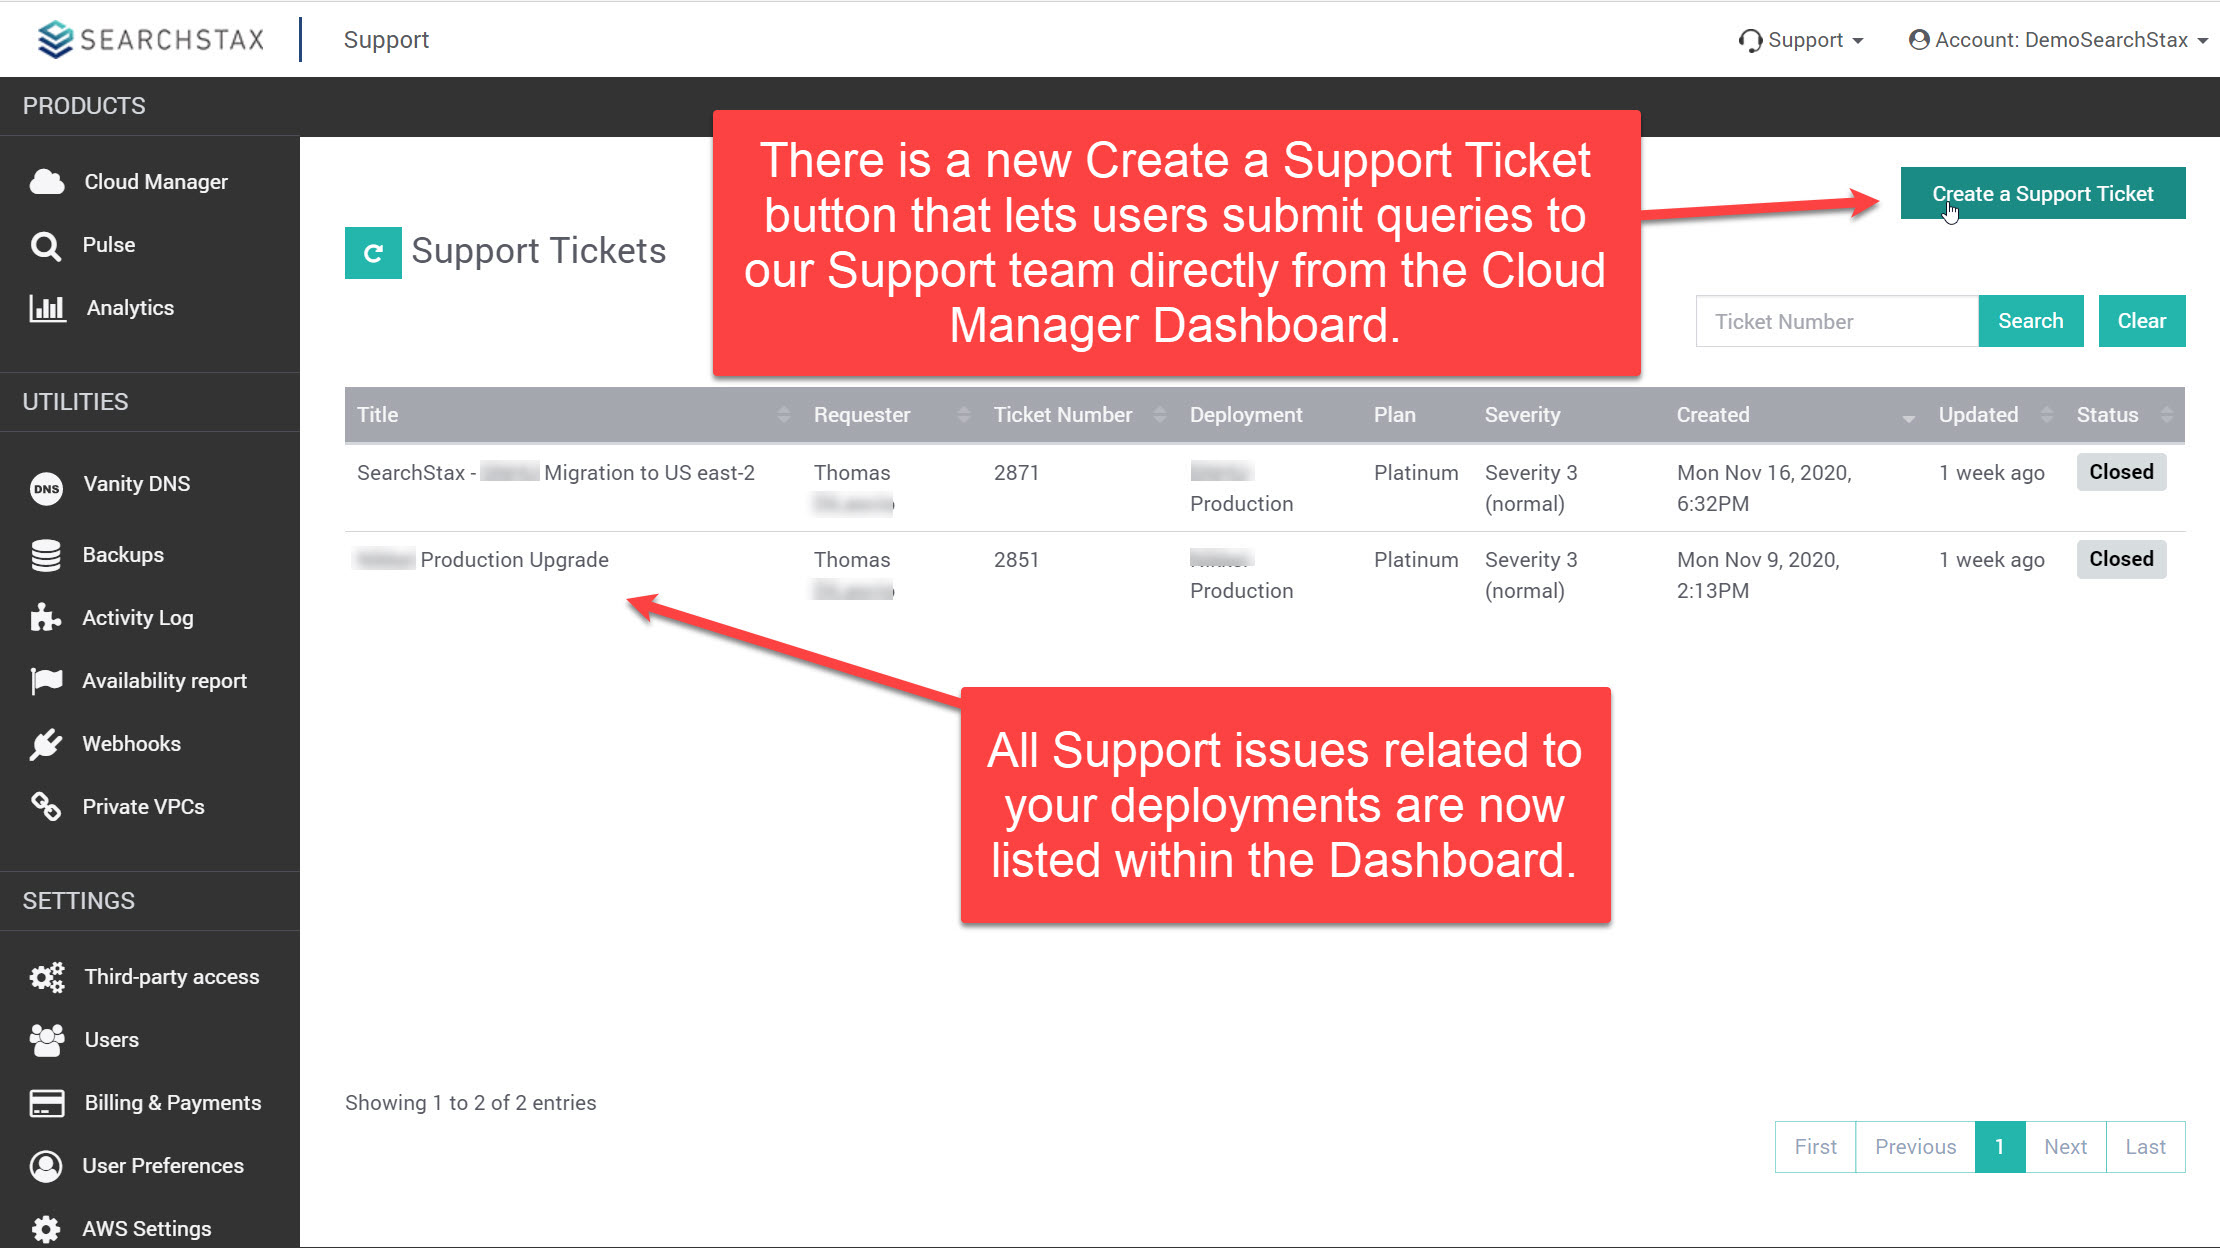 SearchStax Product Updates for Q4 2020 - SearchStax Support Tickets in Dashboard